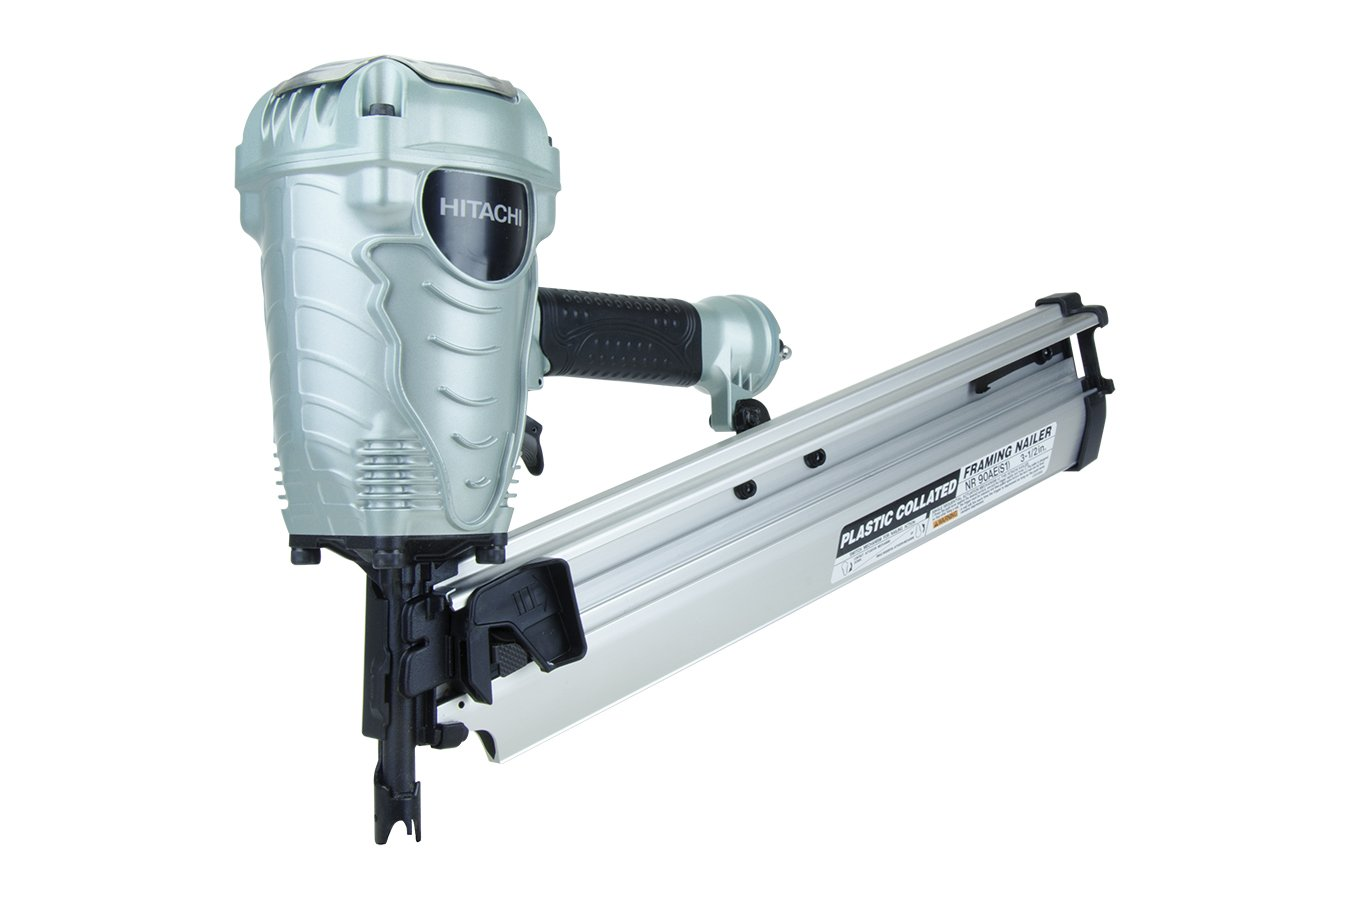 Hitachi NR90AES1 2 to 3-1 2 Plastic Collated Framing Nailer